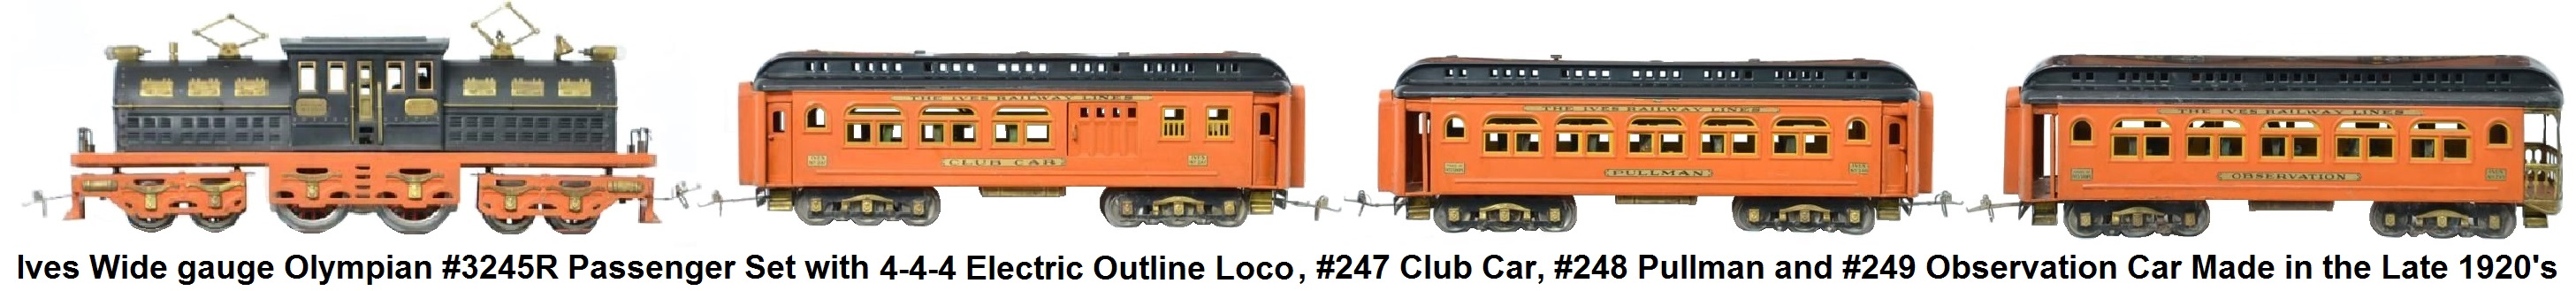 Ives Wide gauge Olympian #3245R passenger set with 4-4-4 Electric outline loco, #247 Club car, #248 Pullman and #249 Observation Car made in the late 1920's